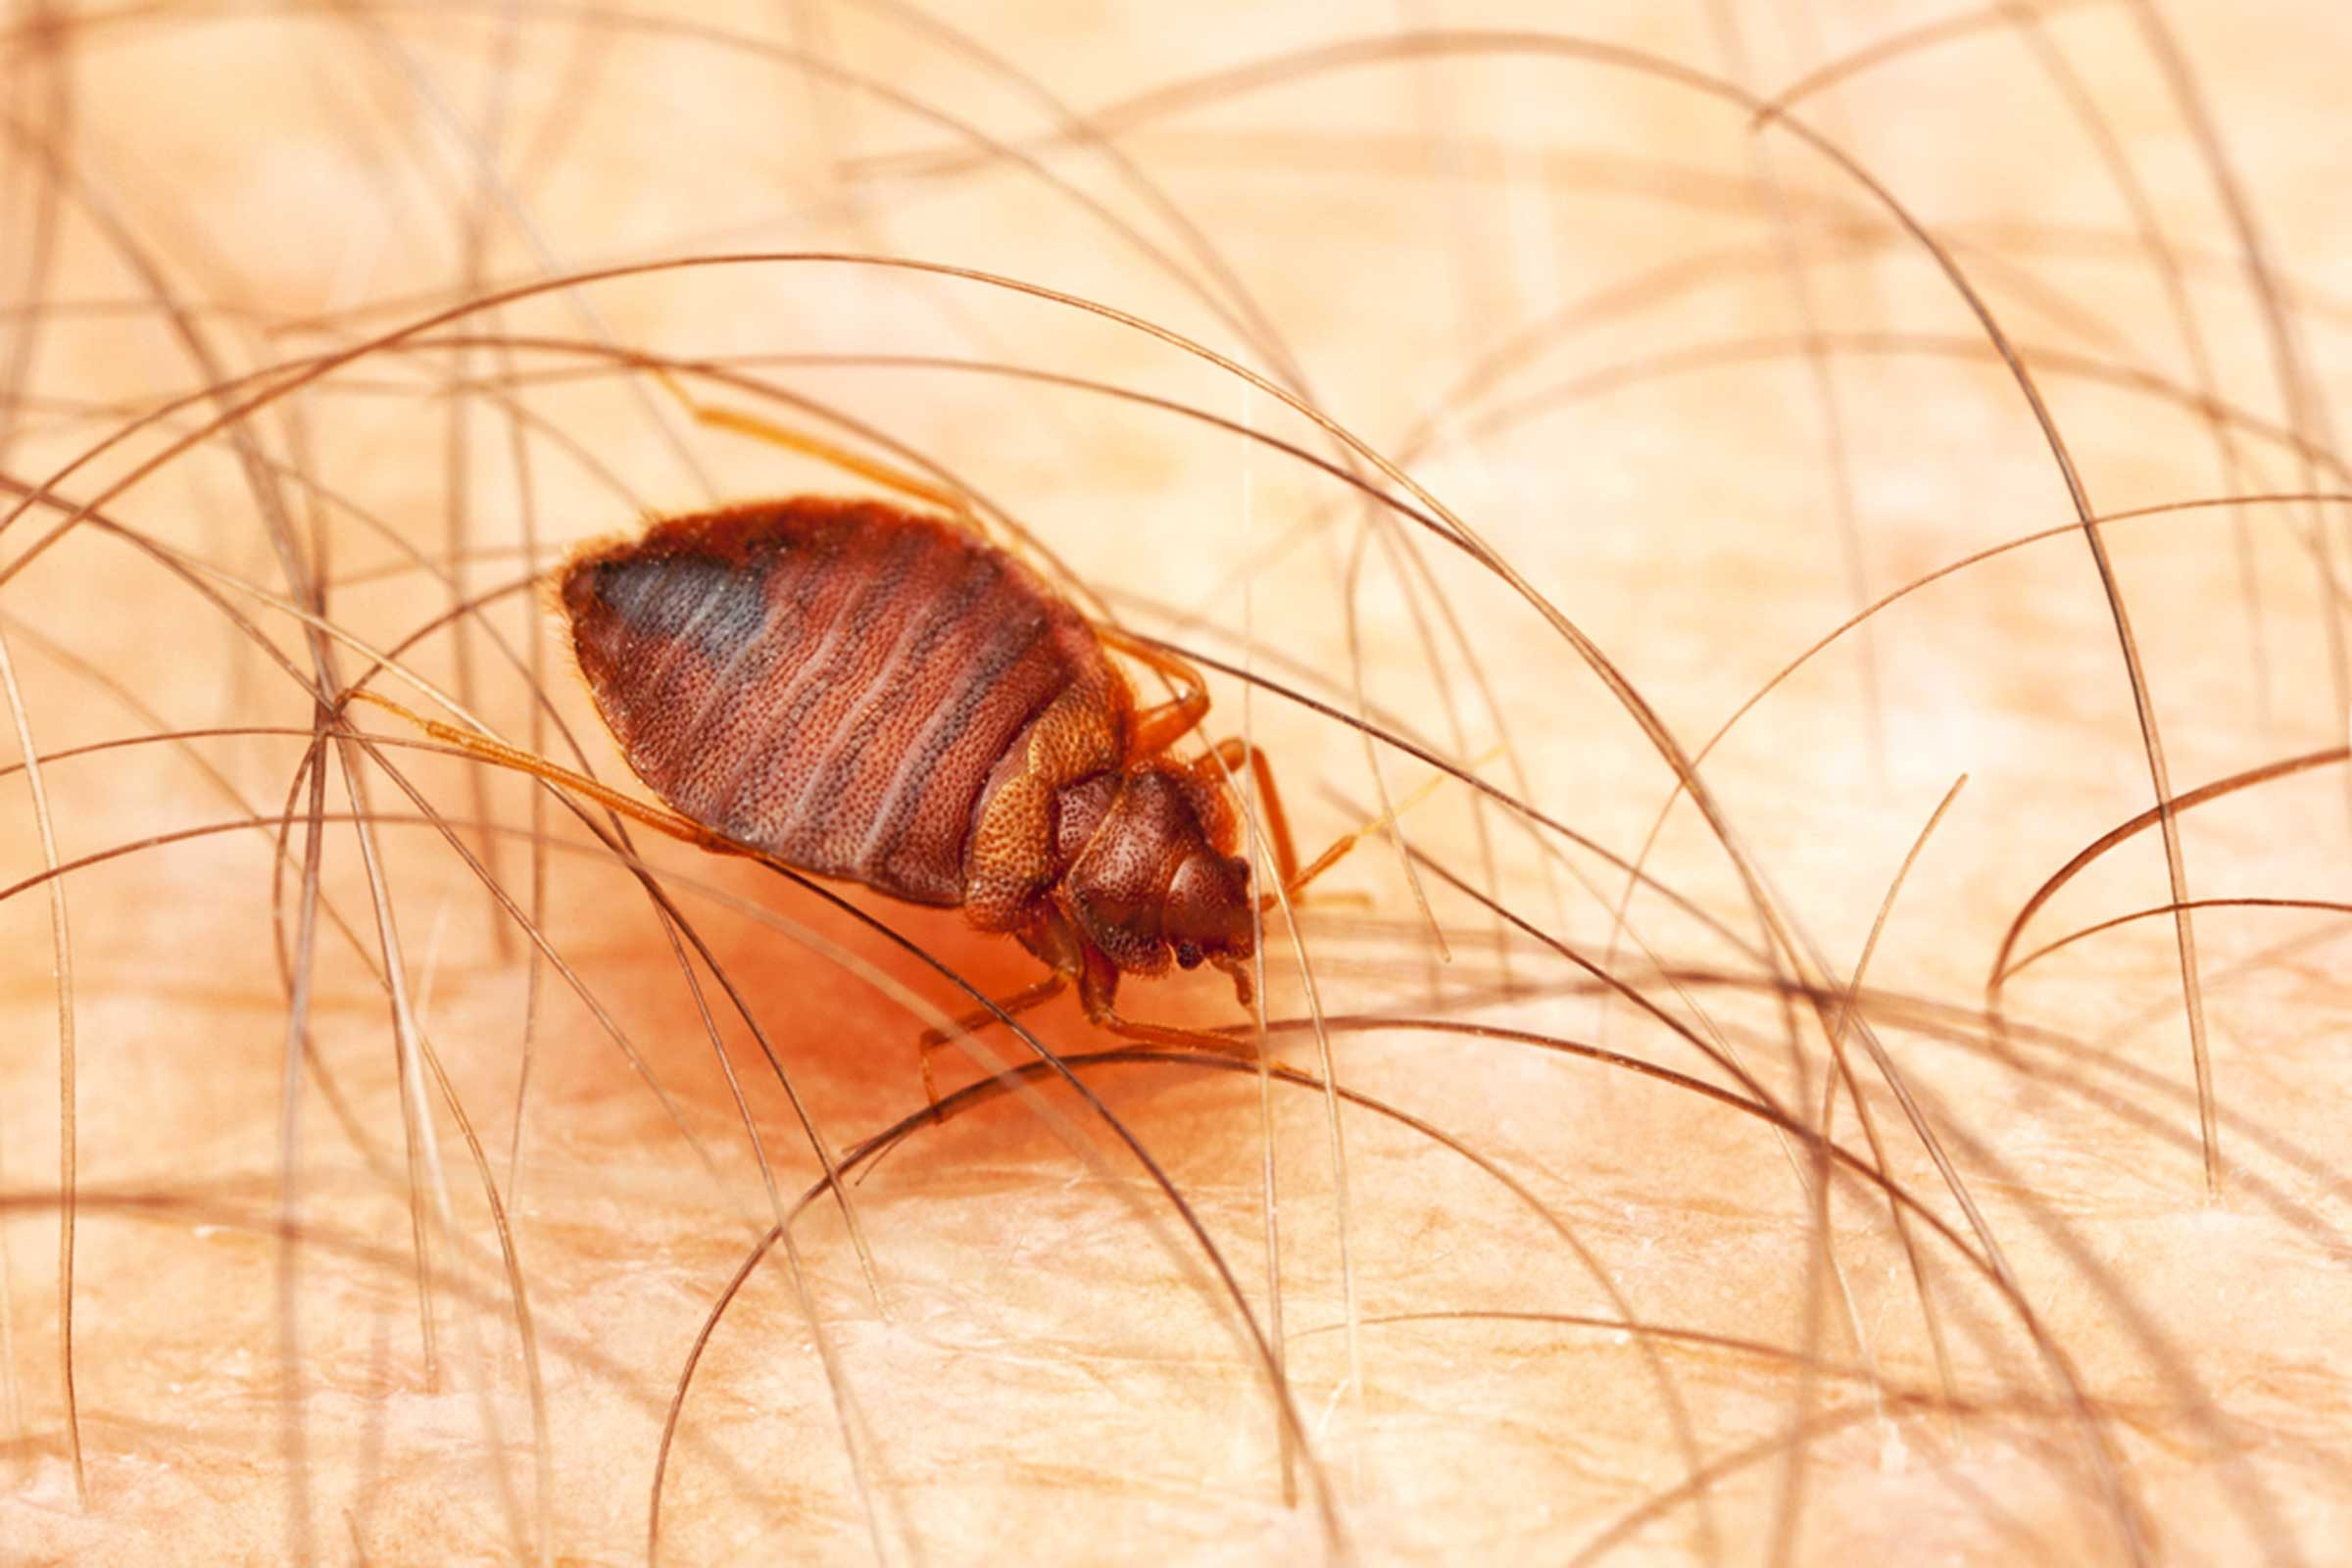 magnification of a bed bug on human skin